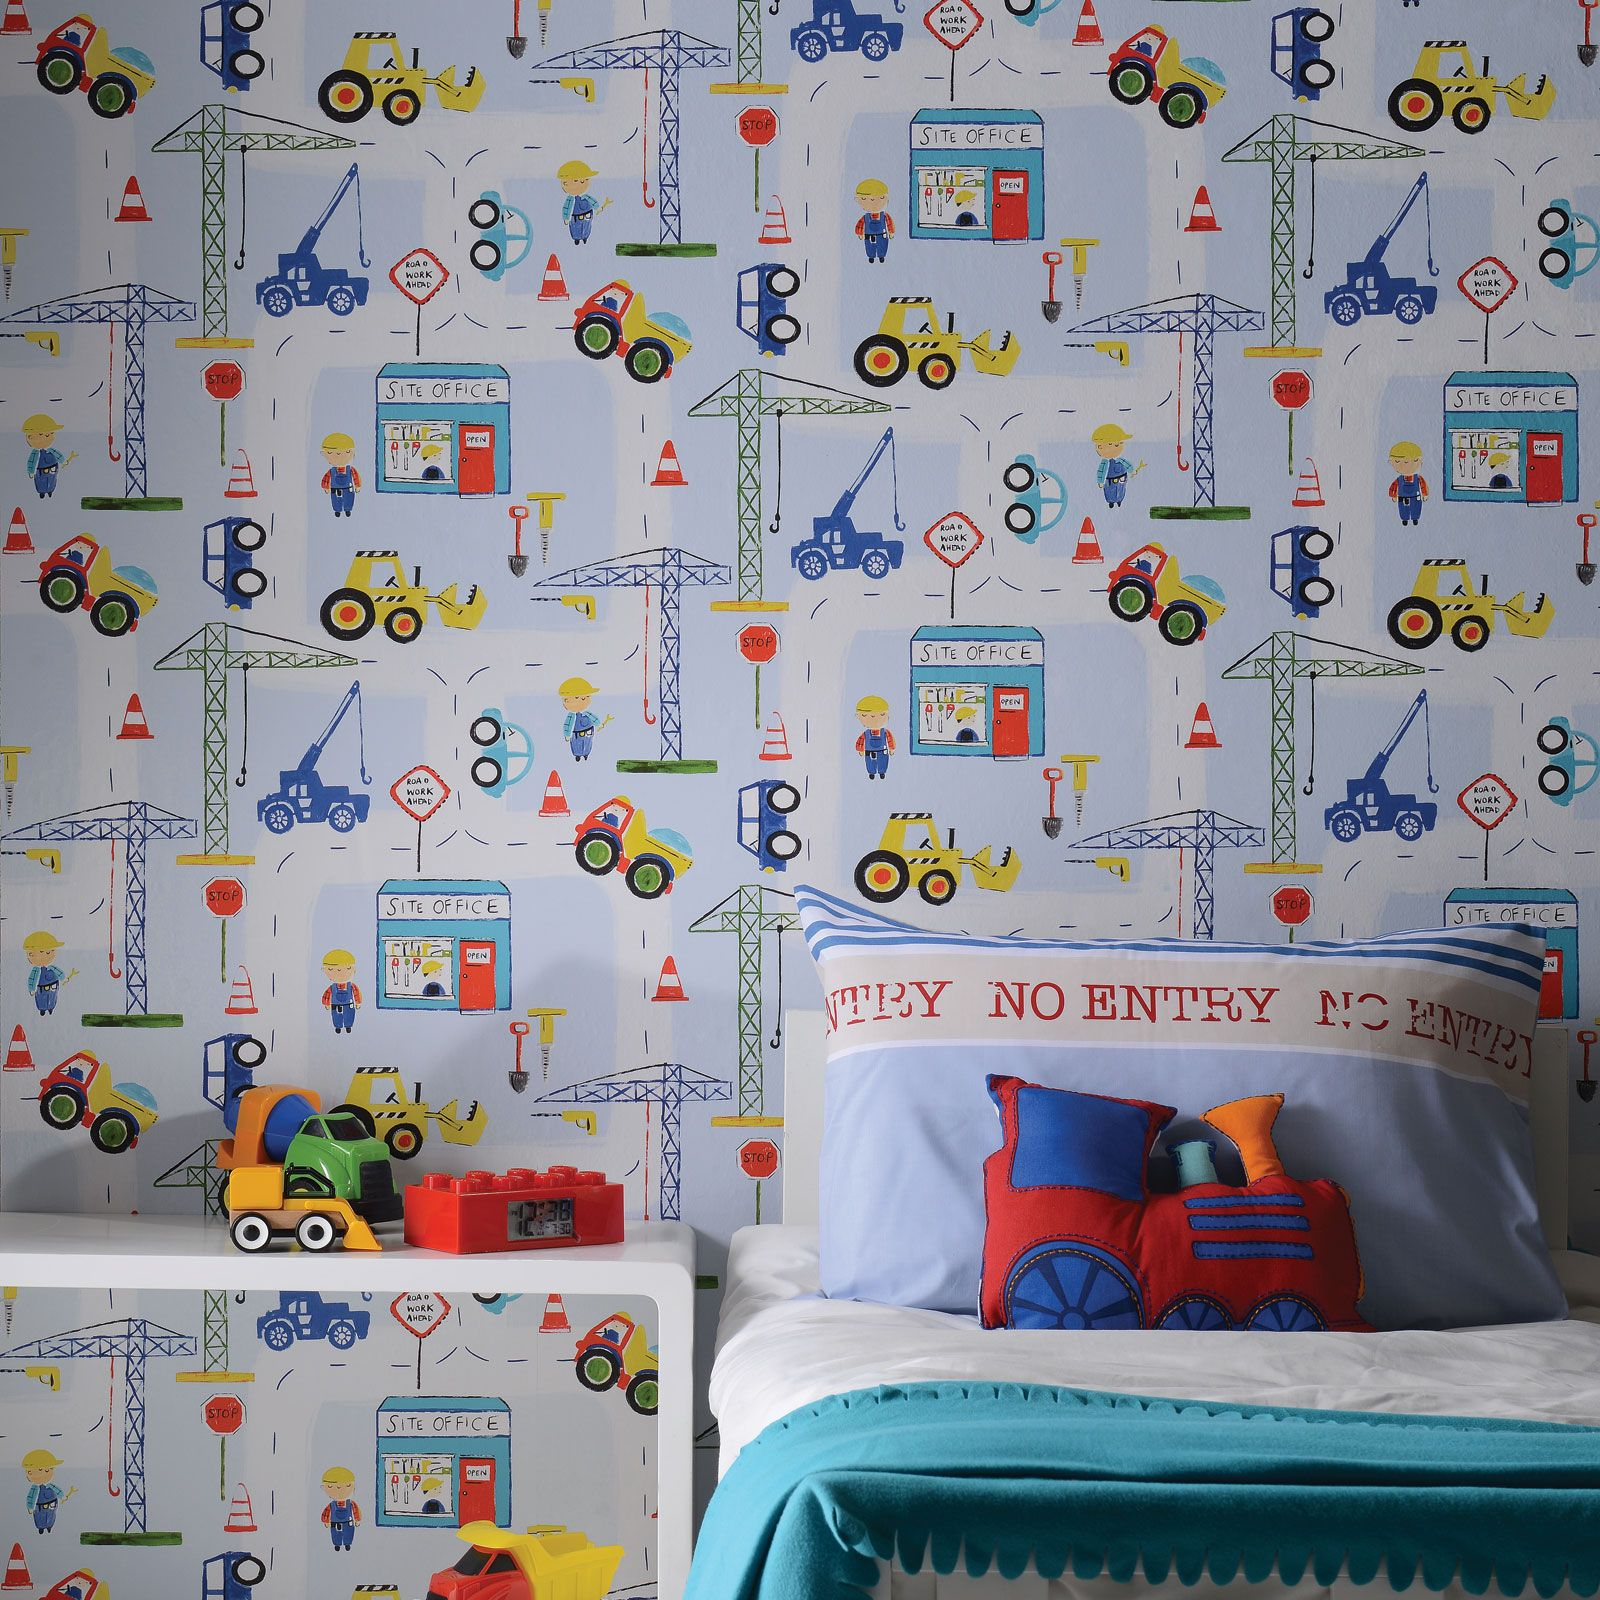 KIDS BEDROOM NURSERY WALLPAPER HOLDEN DECOR PLAYTIME COLLECTION - Boys car wallpaper designs